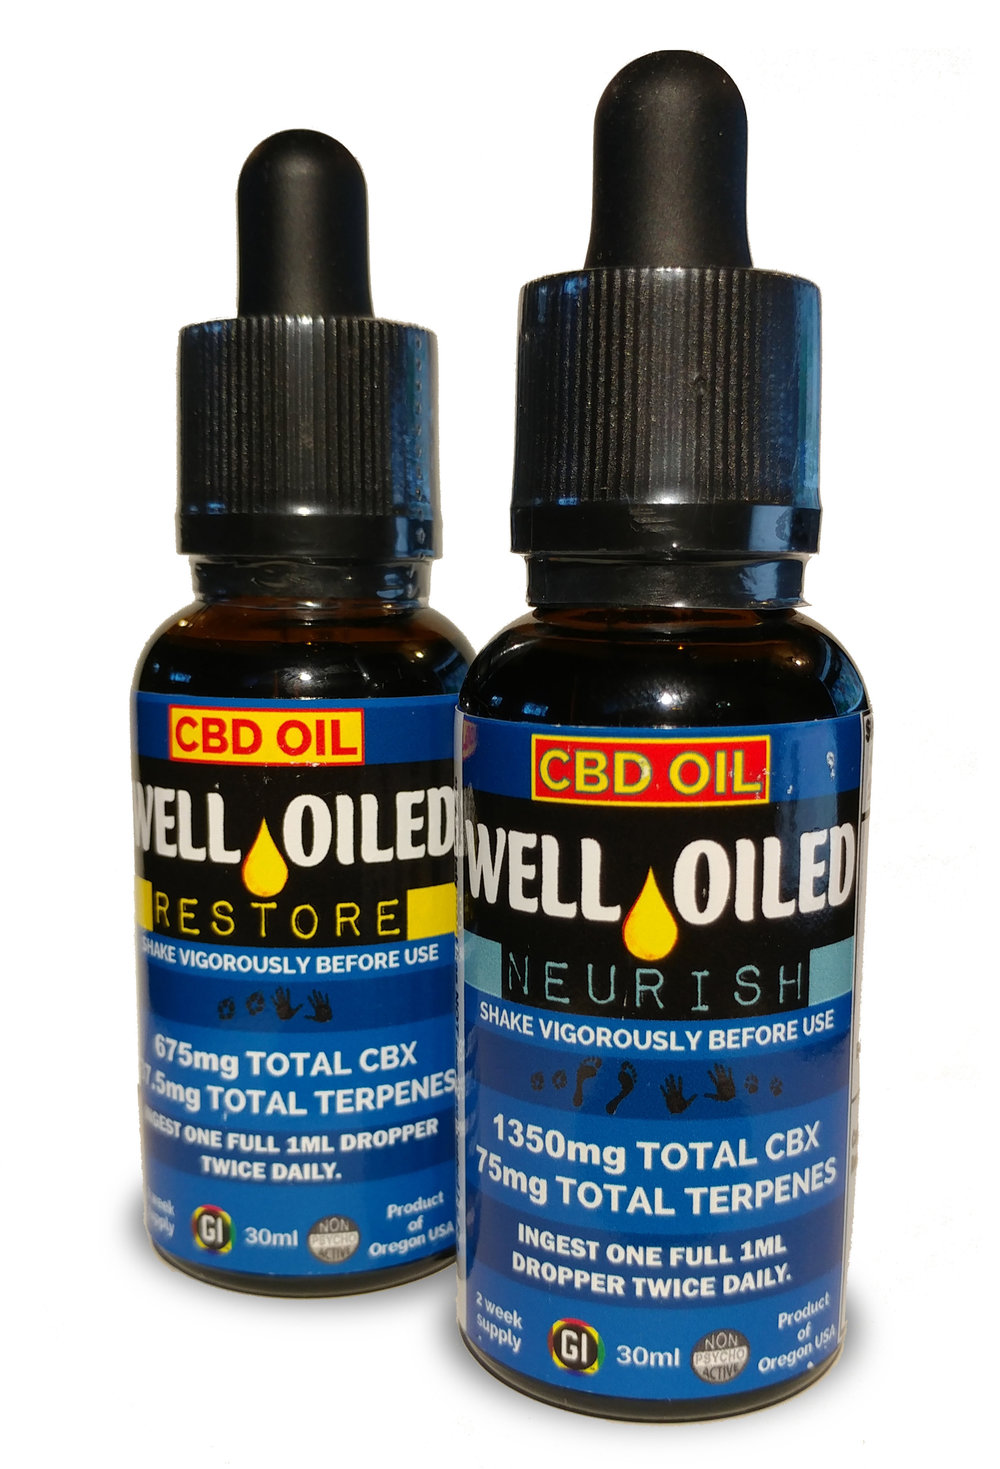 Full Spectrum Whole Flower Essential Oils - Well Oiled are a producer, processor, and formulator of whole flower industrial hemp (IH) strain specific essential oil formulations made from full spectrum whole plant (IH) CBD rich resins of organically grown hemp under 2018 licensing under Oregon dept of Agriculture OAR 603-048-2310 and rigorously tested for purity, potency, heavy metals, residual solvents, pesticides, and microbial contaminants at Steep Hill laboratories.